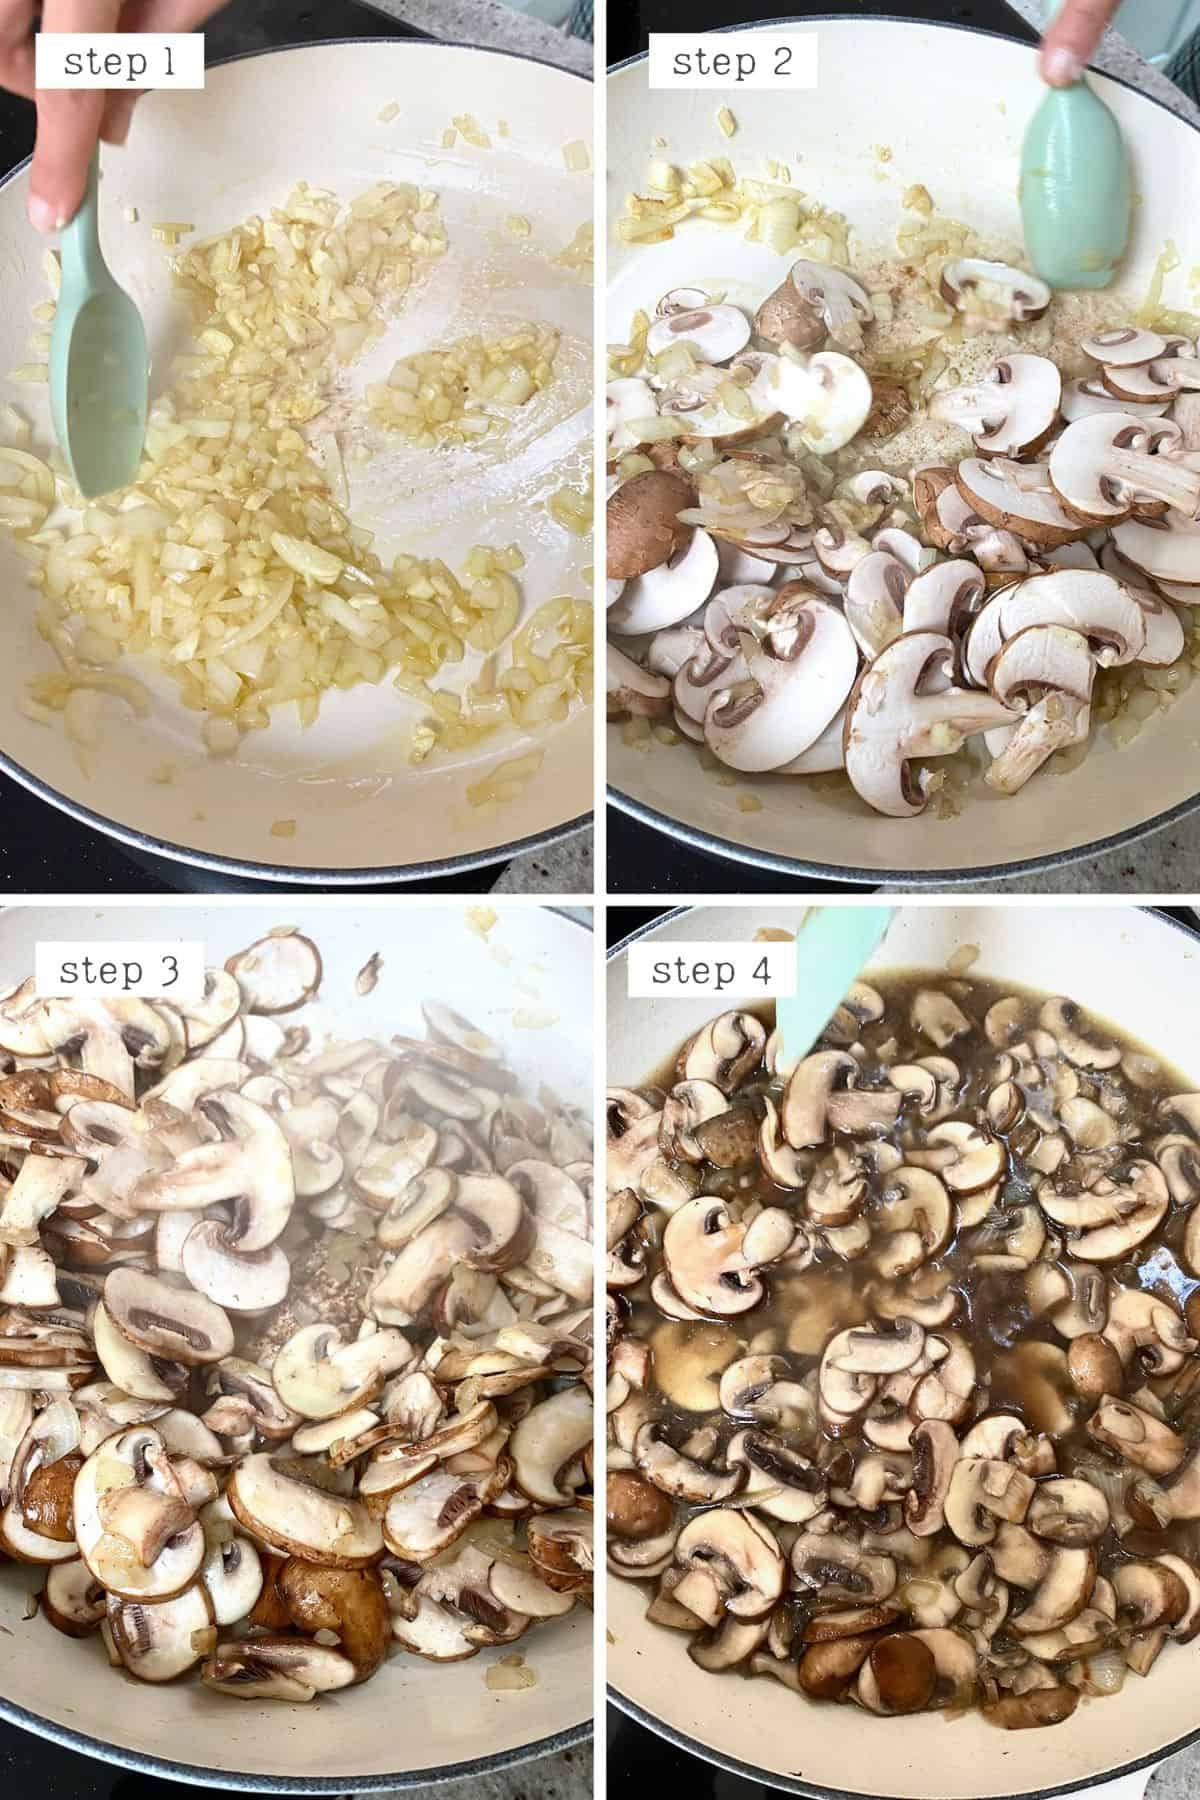 Steps for cooking mushrooms